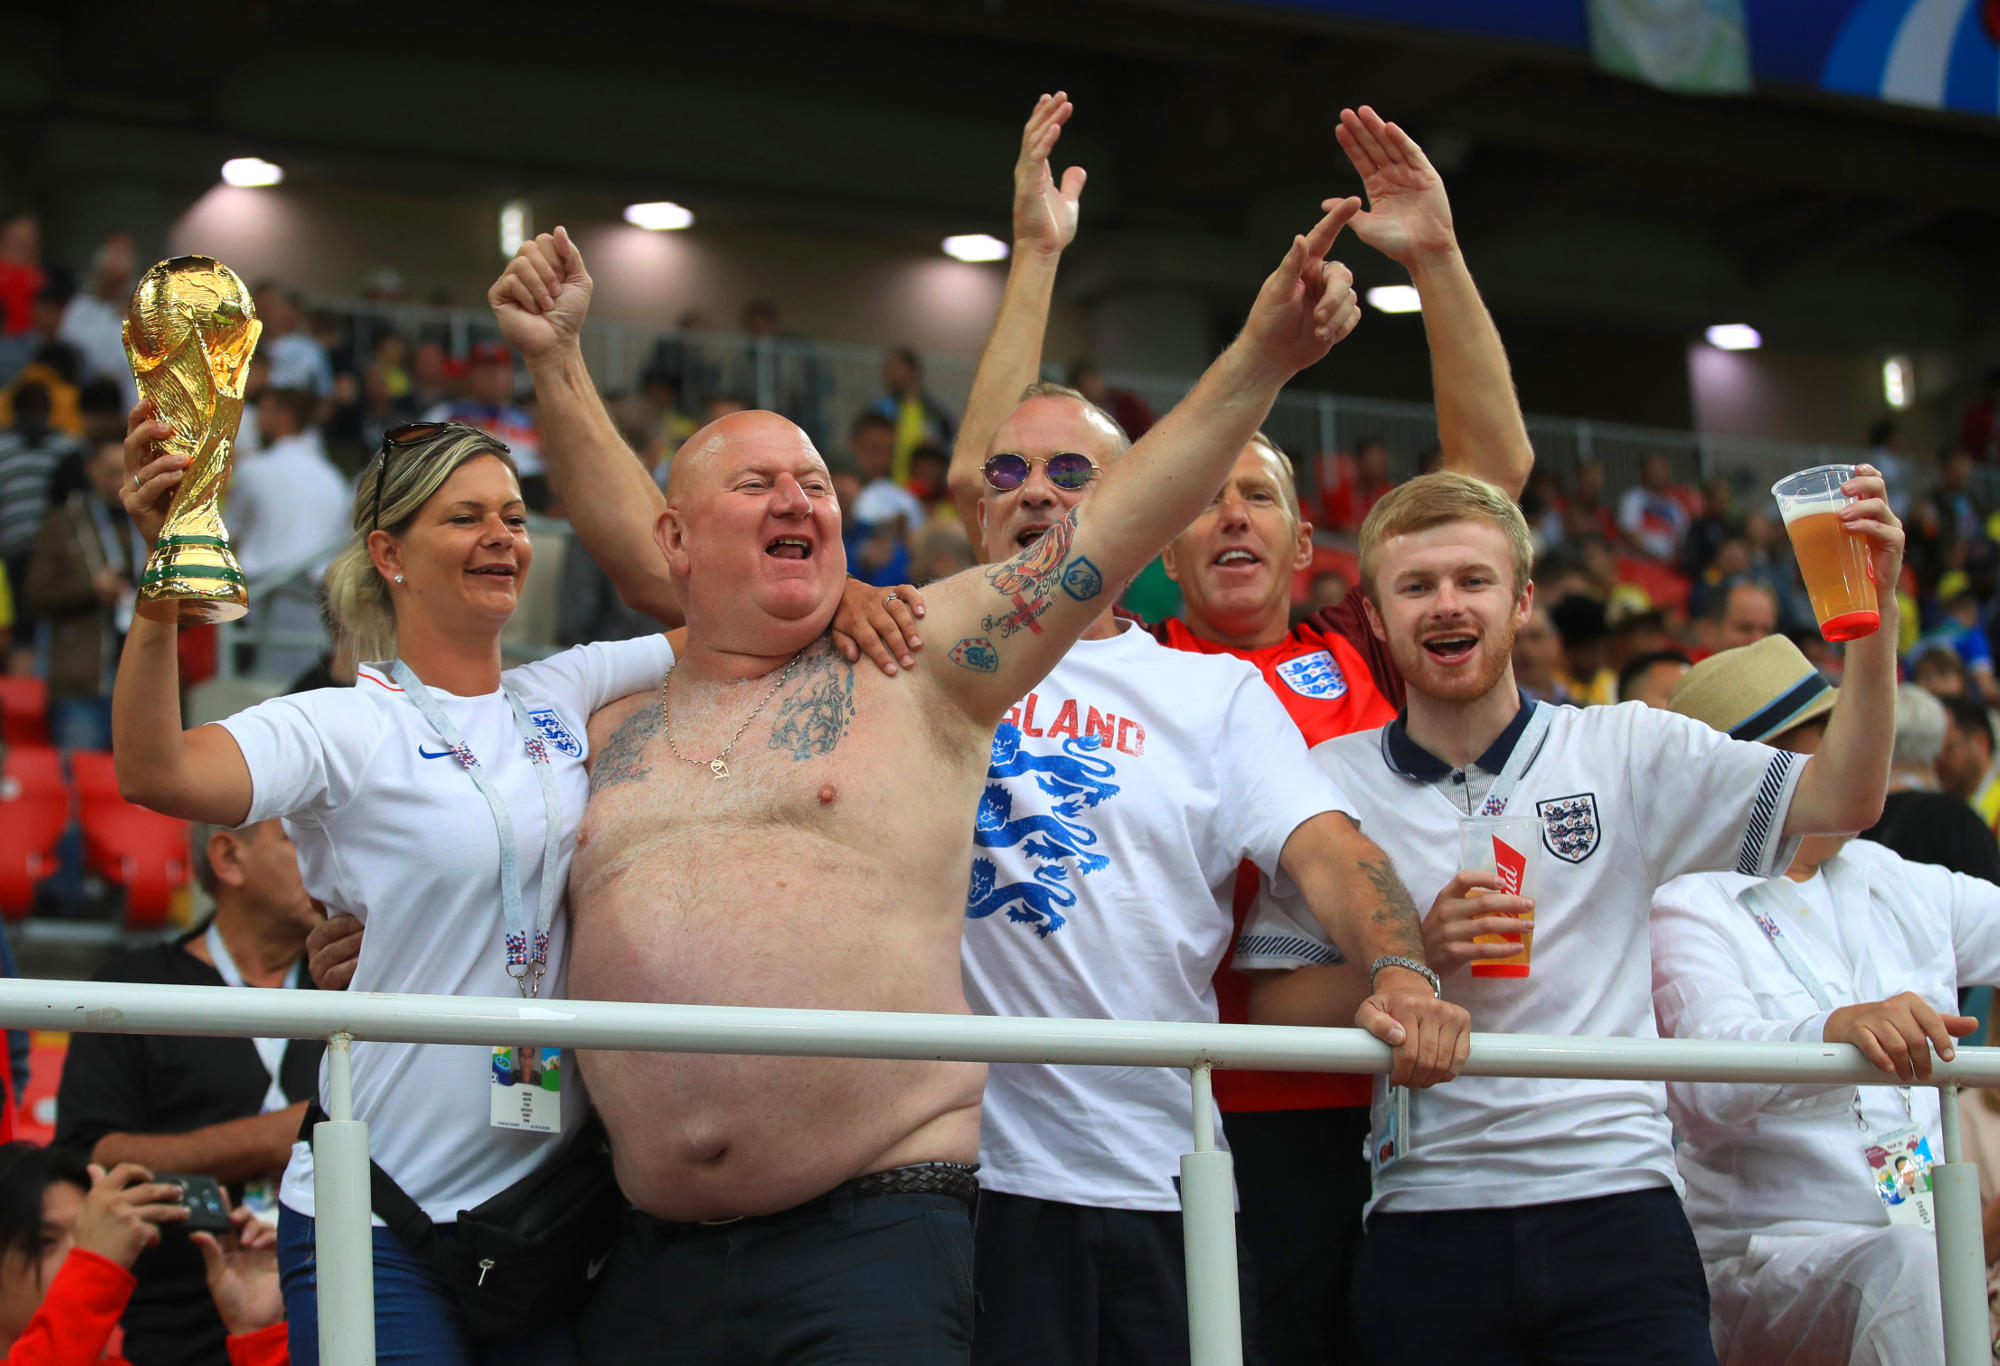 England fans celebrating in the stands at the World Cup.